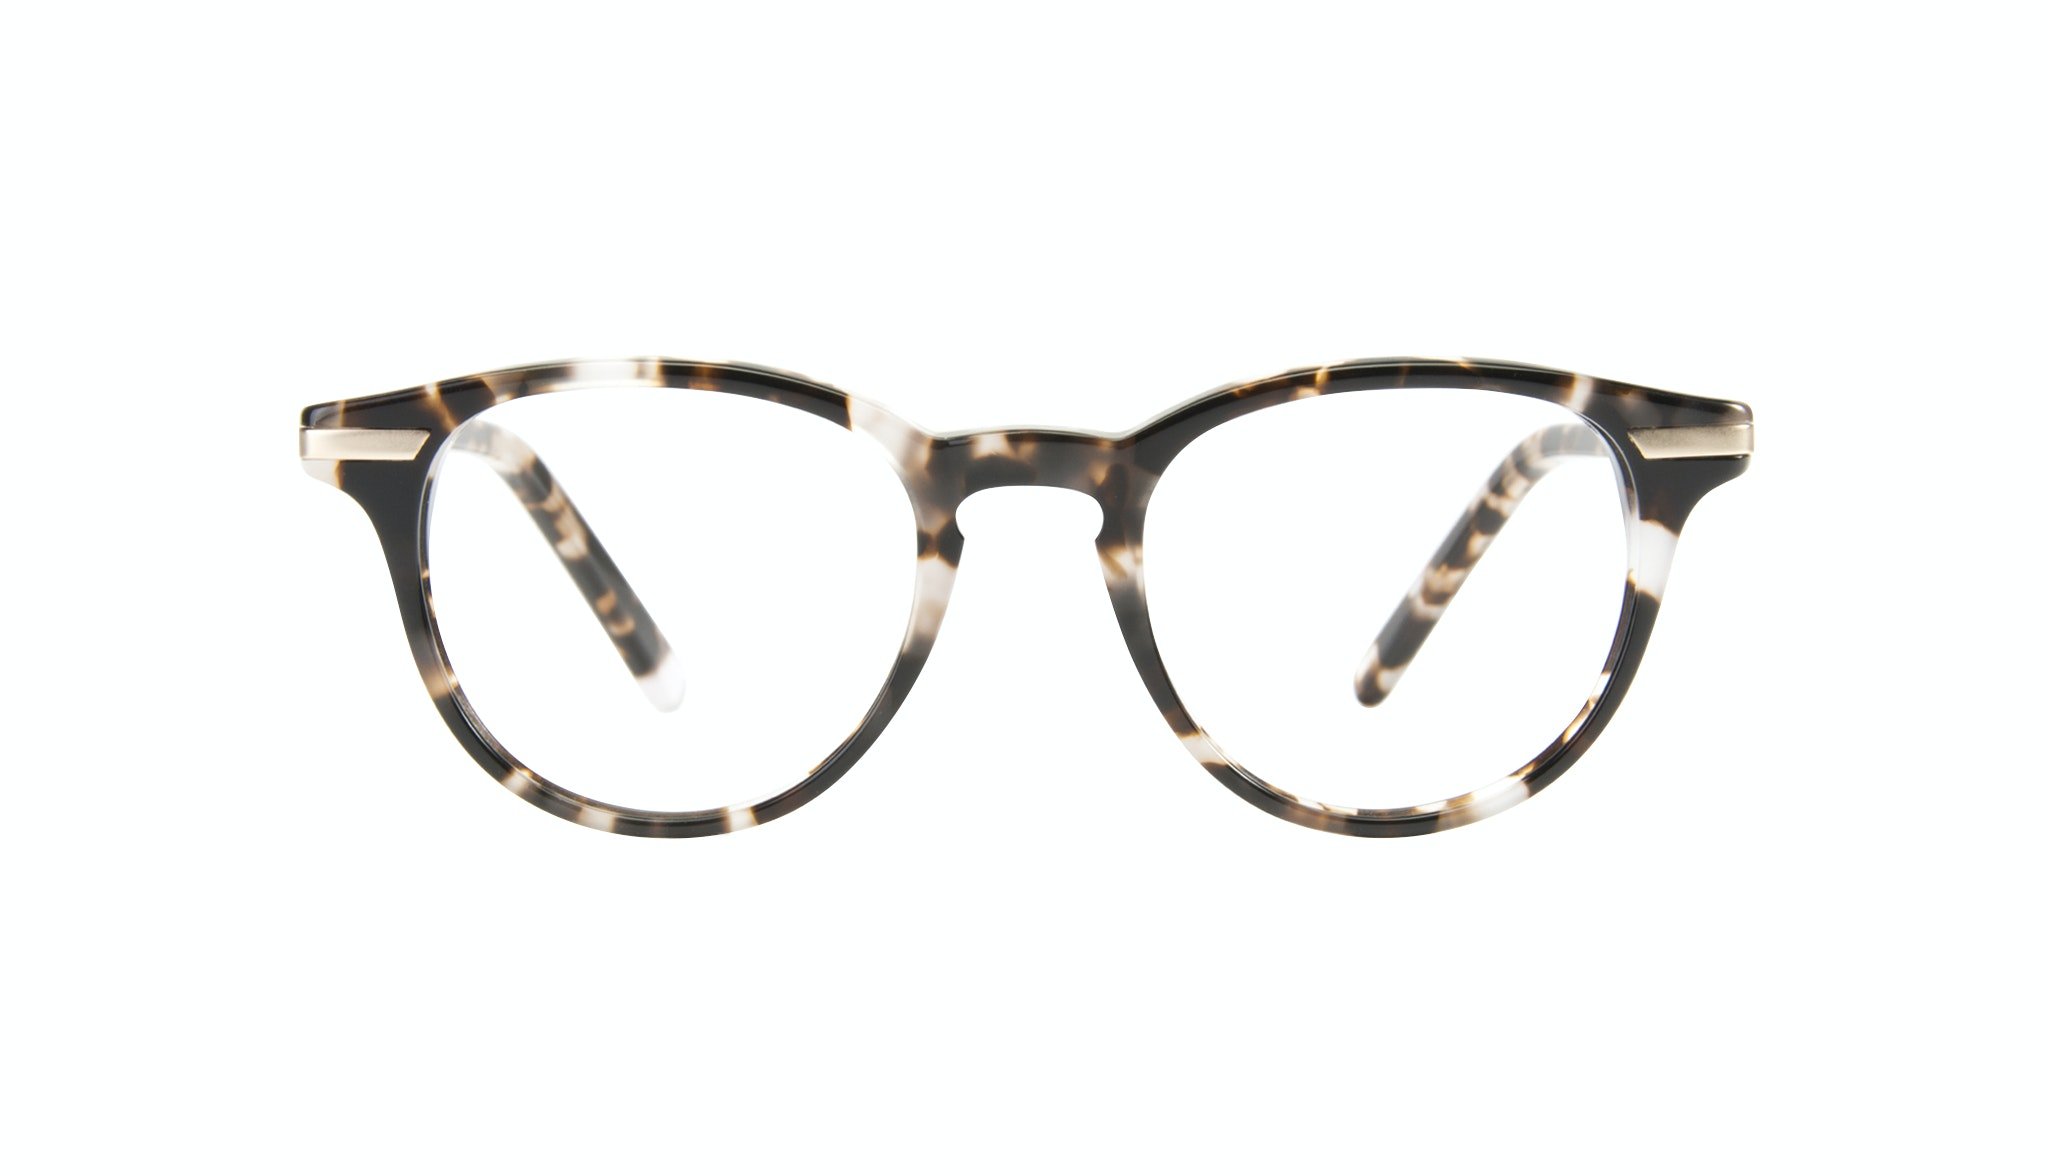 Affordable Fashion Glasses Round Eyeglasses Women Spark Mocha Tort